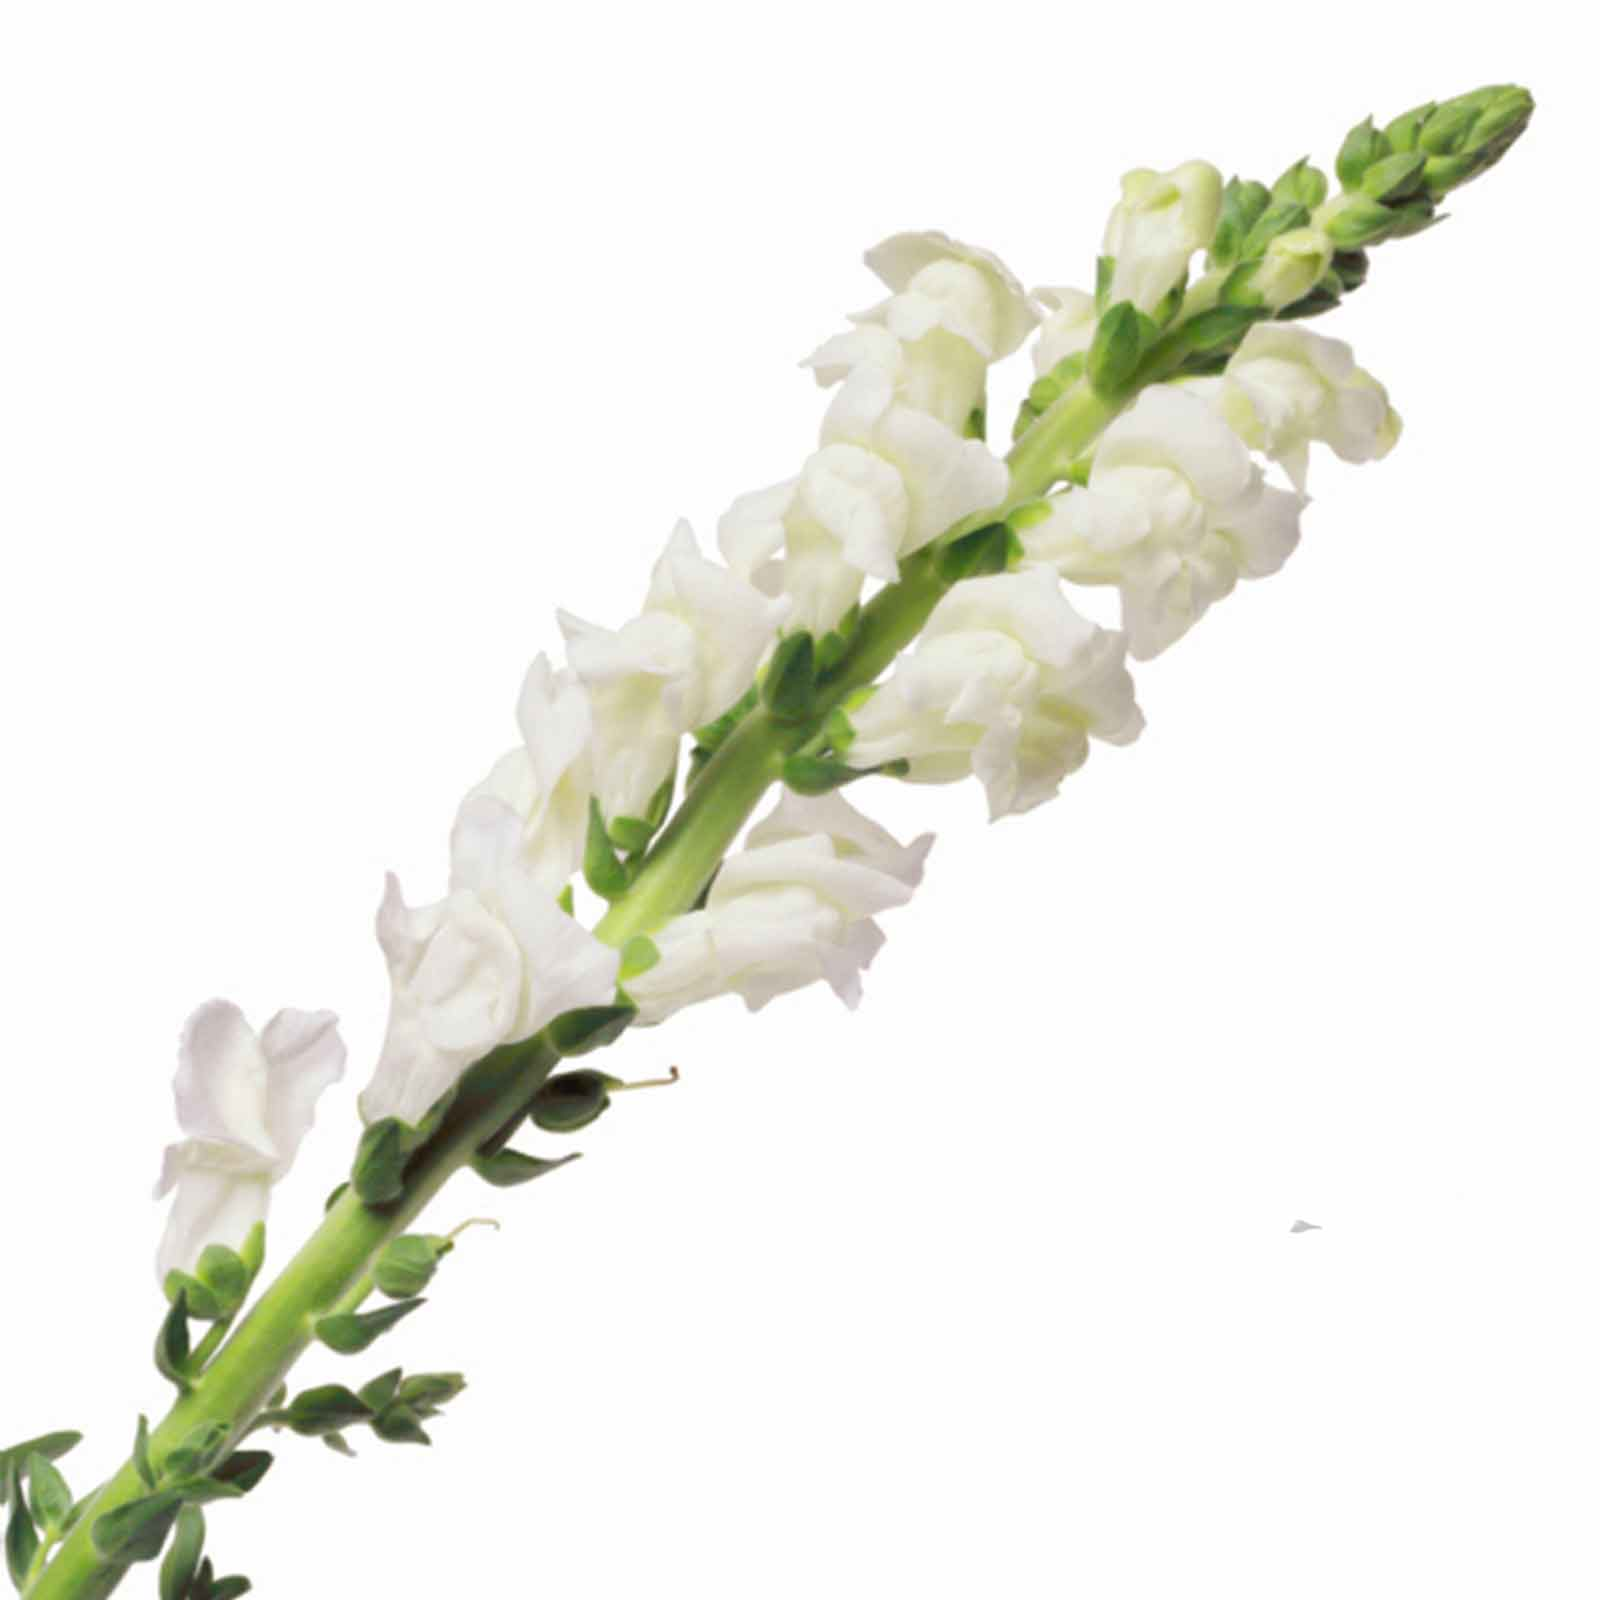 Snapdragon flower seeds liberty classic 1000 seeds white snapdragon flower seeds liberty classic 1000 seeds white garden mightylinksfo